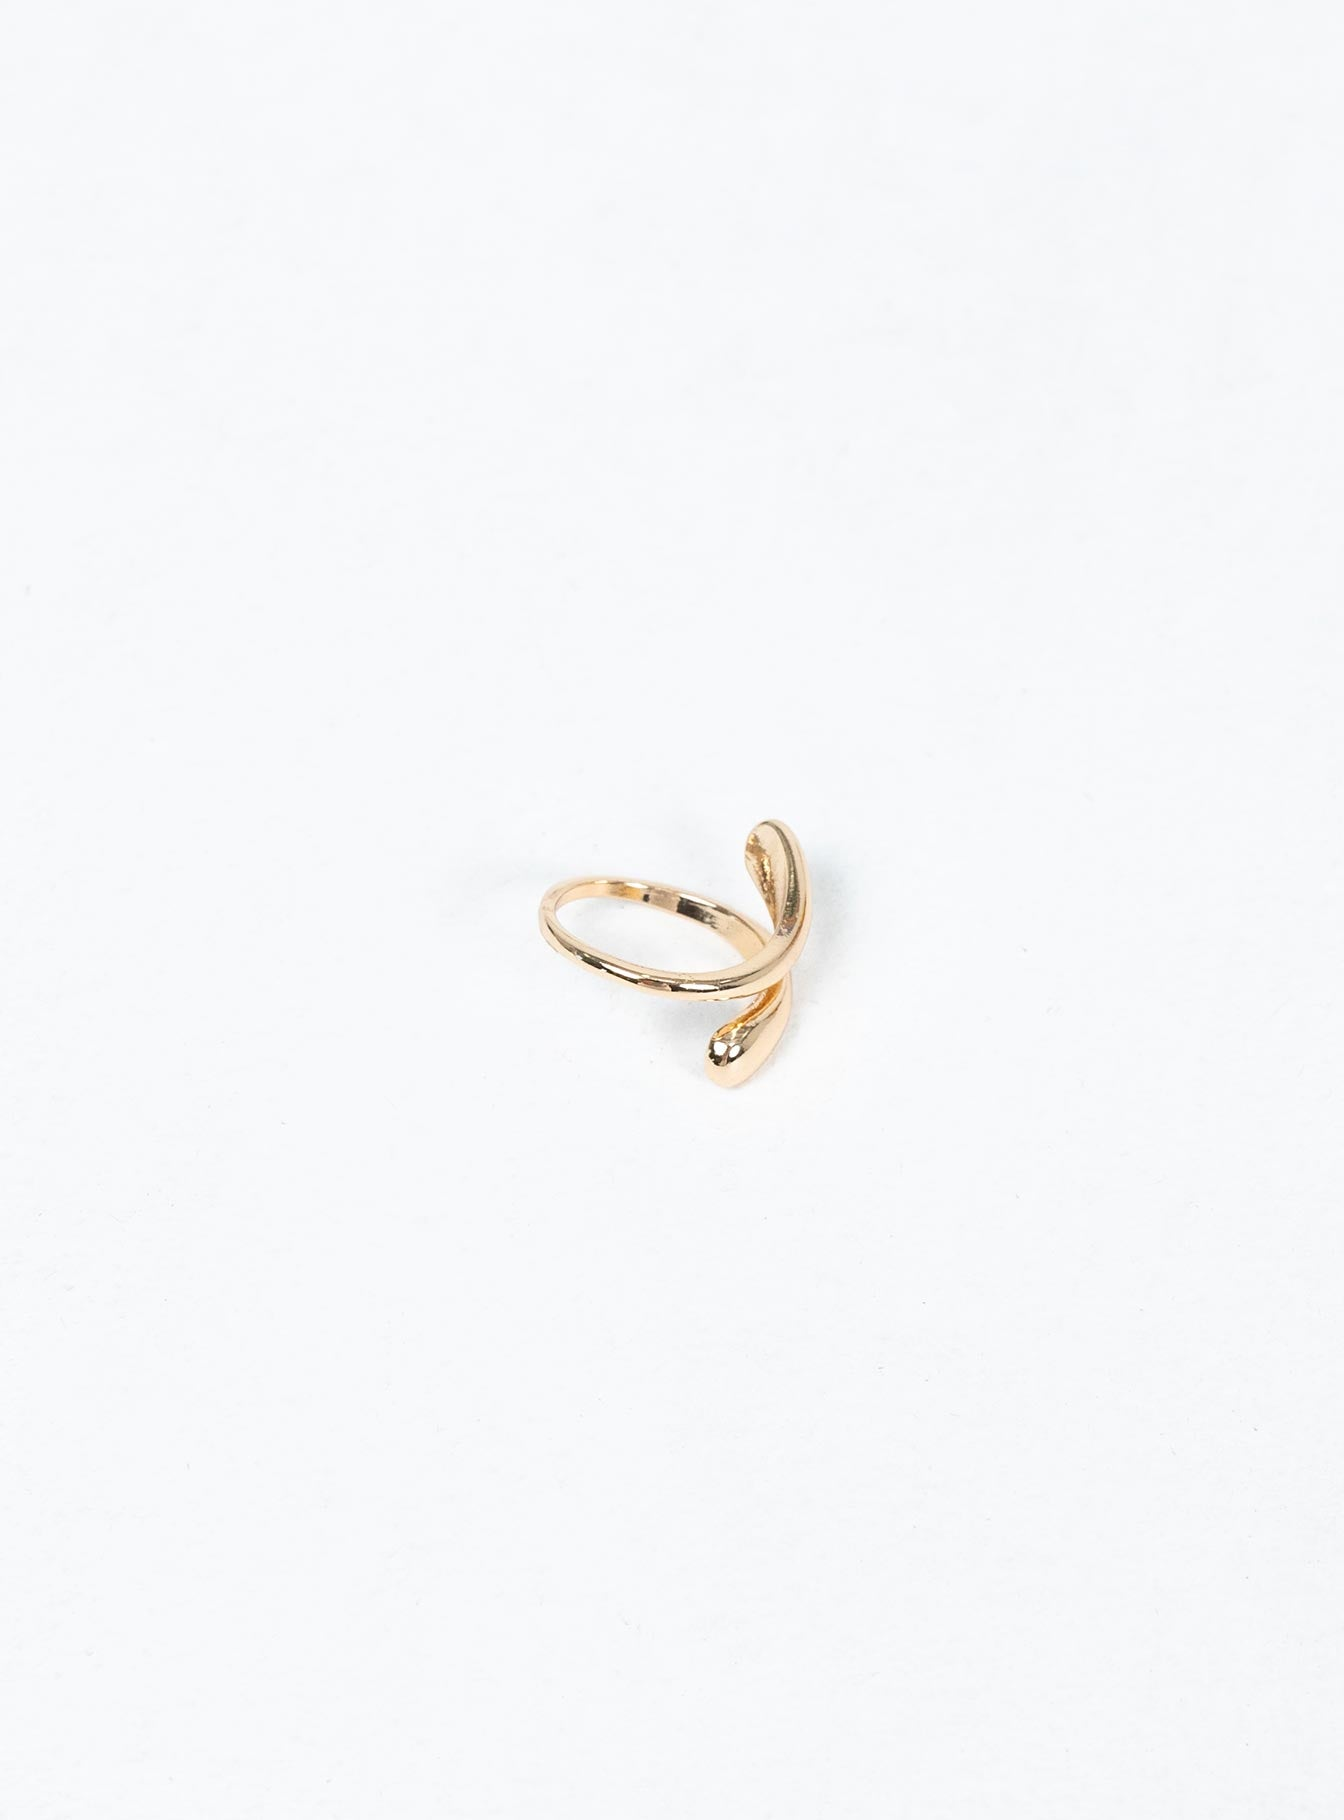 The Naxos Ring